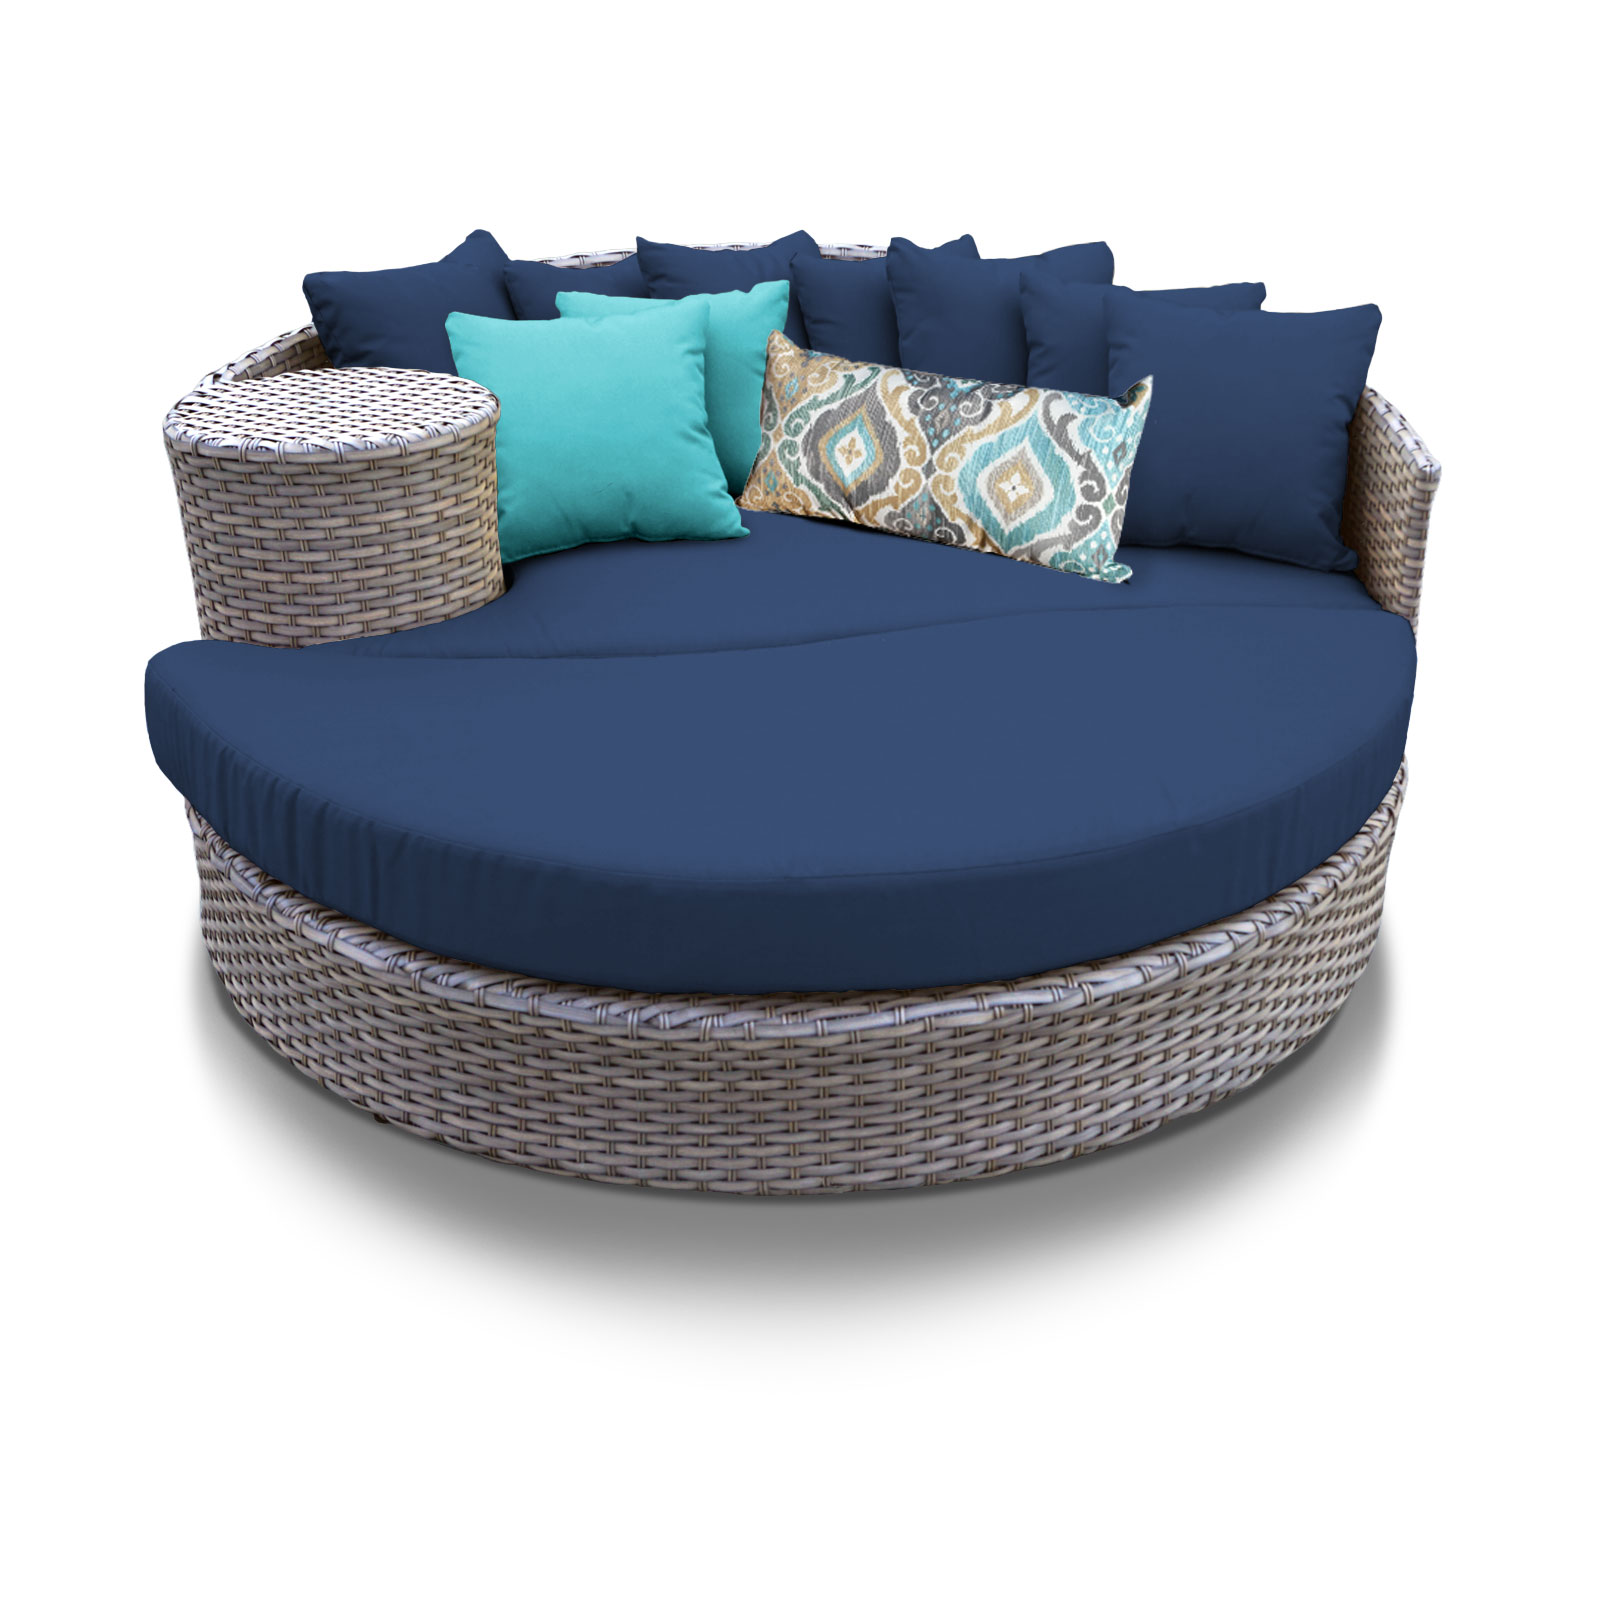 Outstanding Harmony Circular Sun Bed Outdoor Wicker Patio Furniture Download Free Architecture Designs Embacsunscenecom